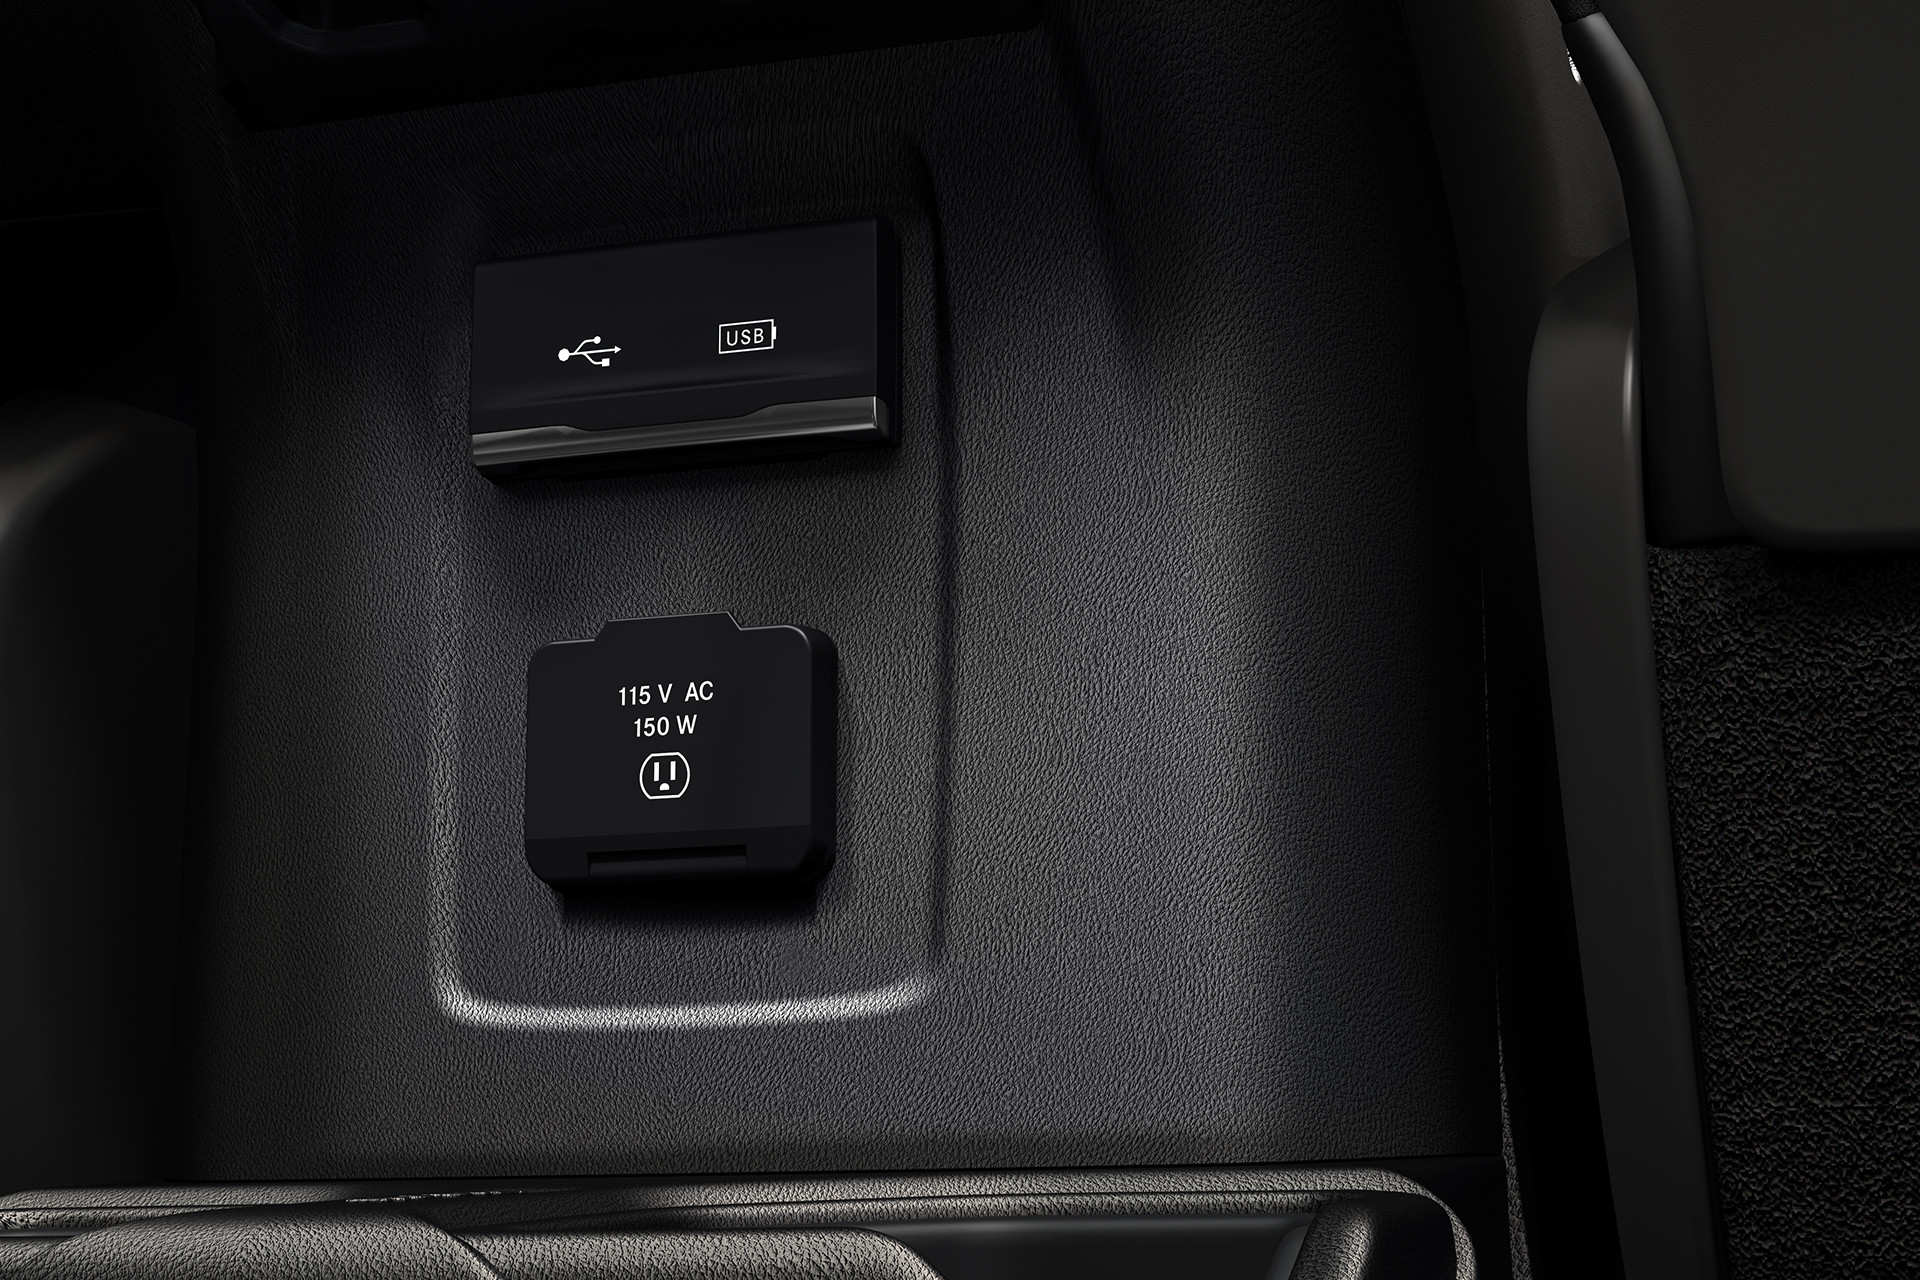 2019 Jeep Wrangler interior, showing power outlet and usb ports